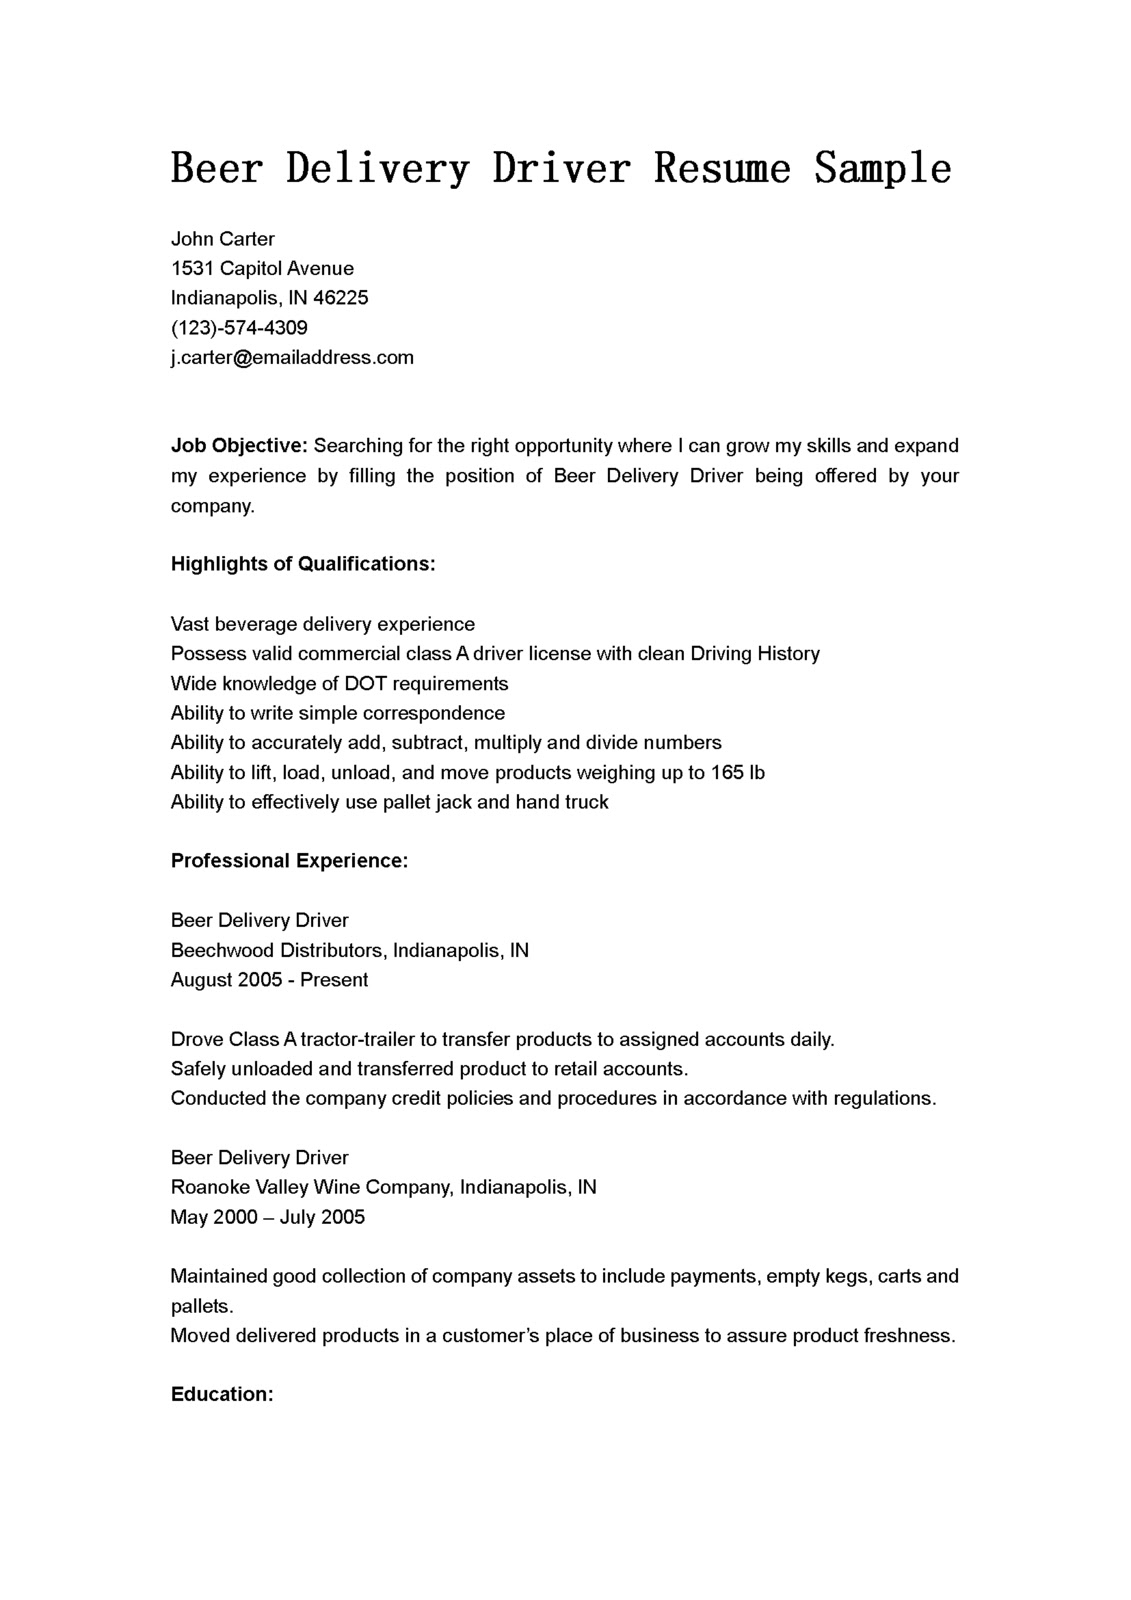 Pizza Delivery Driver Job Description For Resume Best Pizza